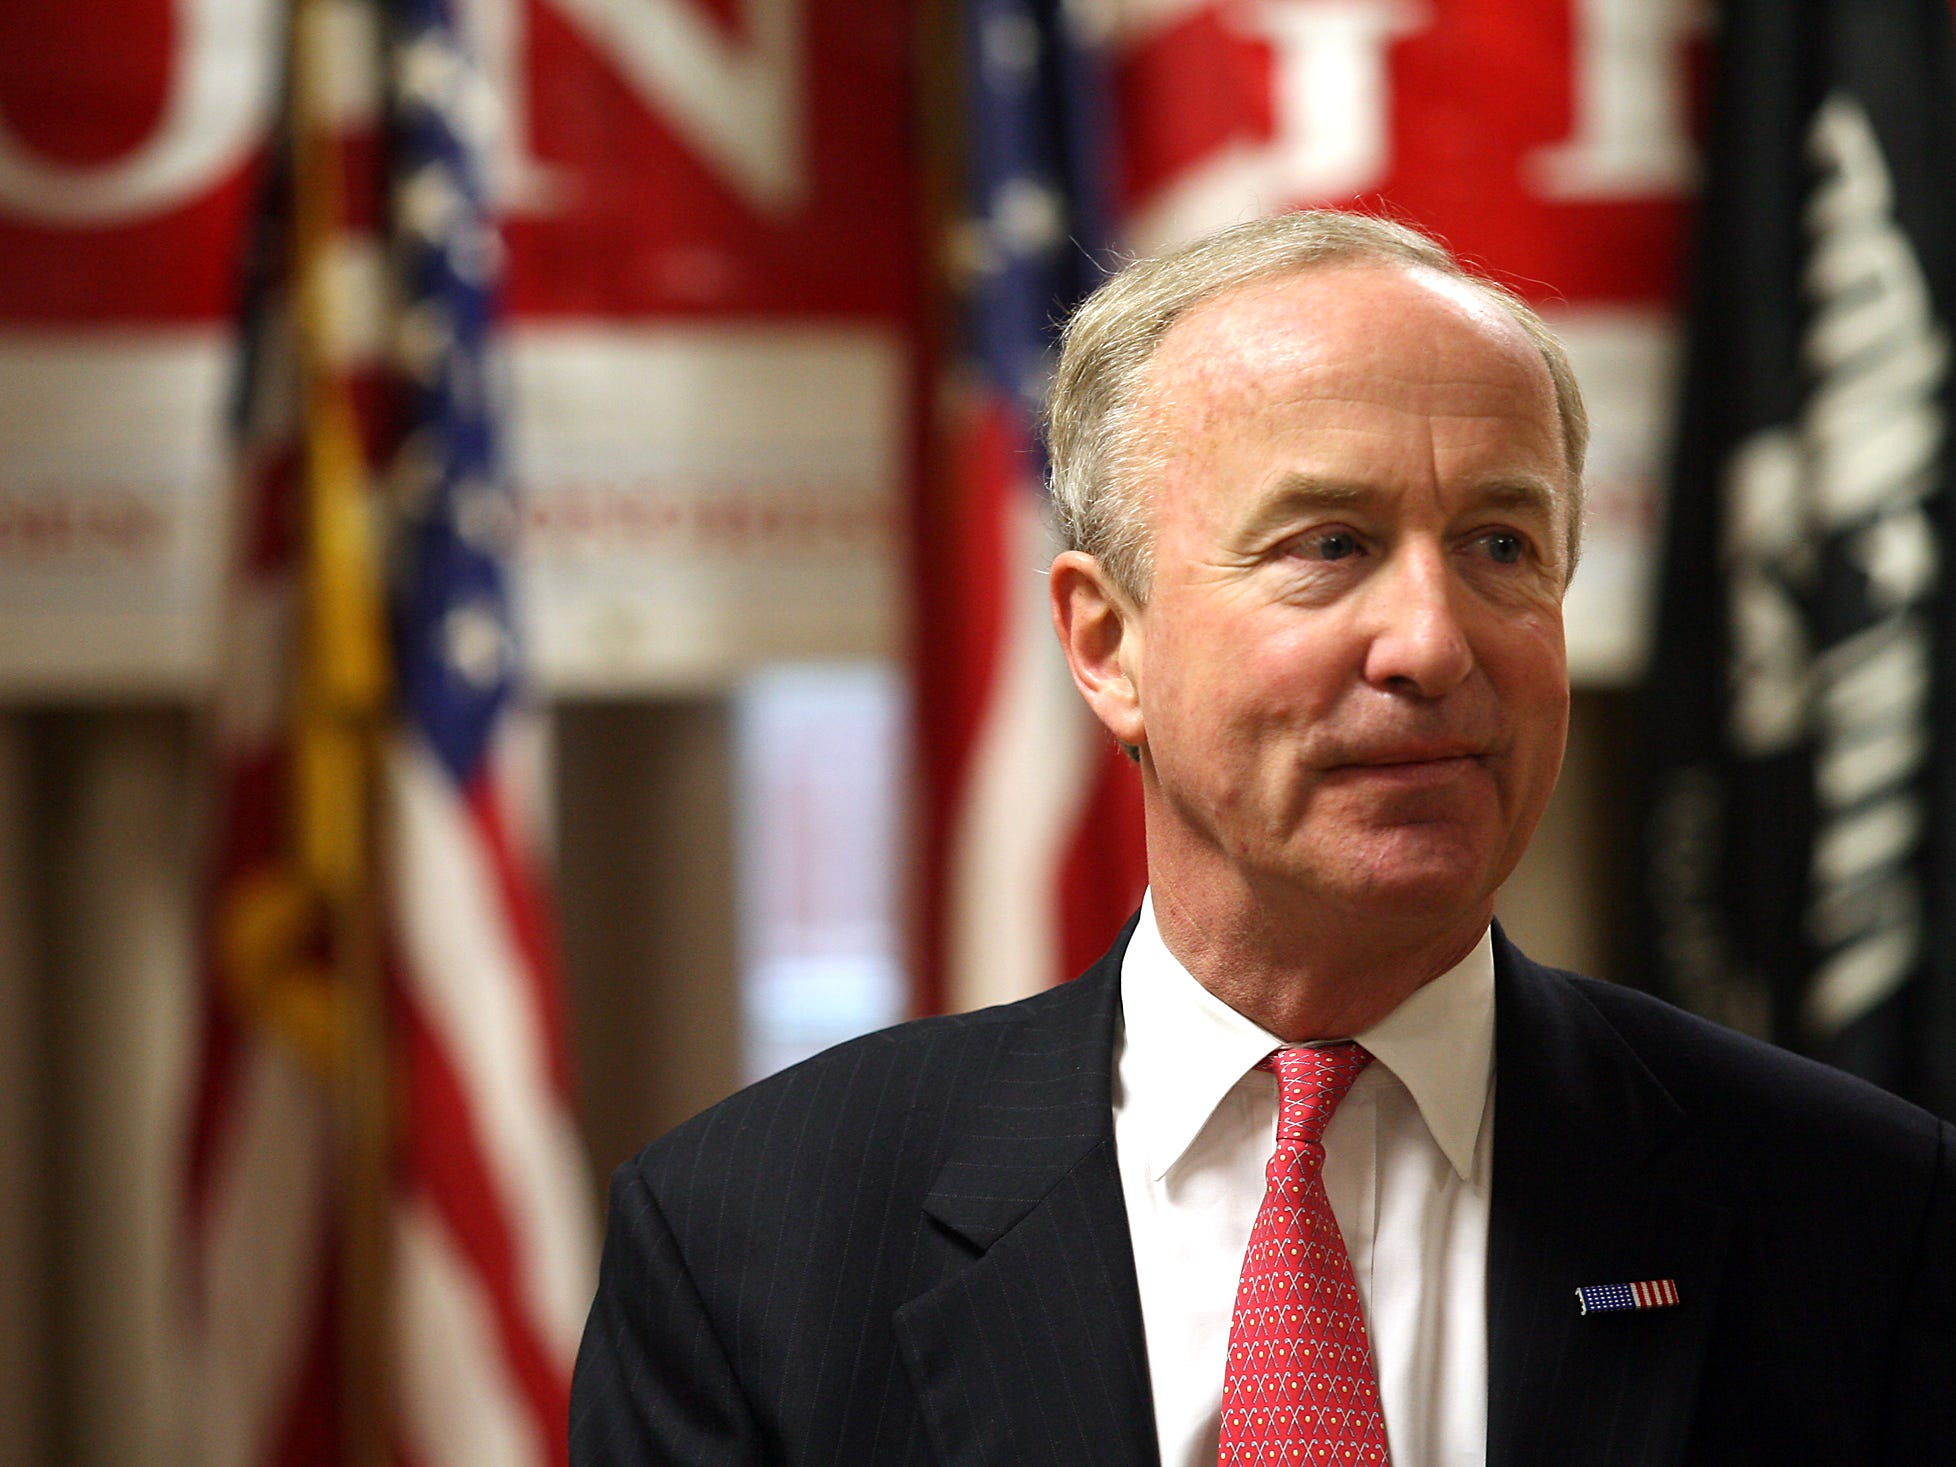 Rep. Rodney Frelinghuysen, R-N.J.